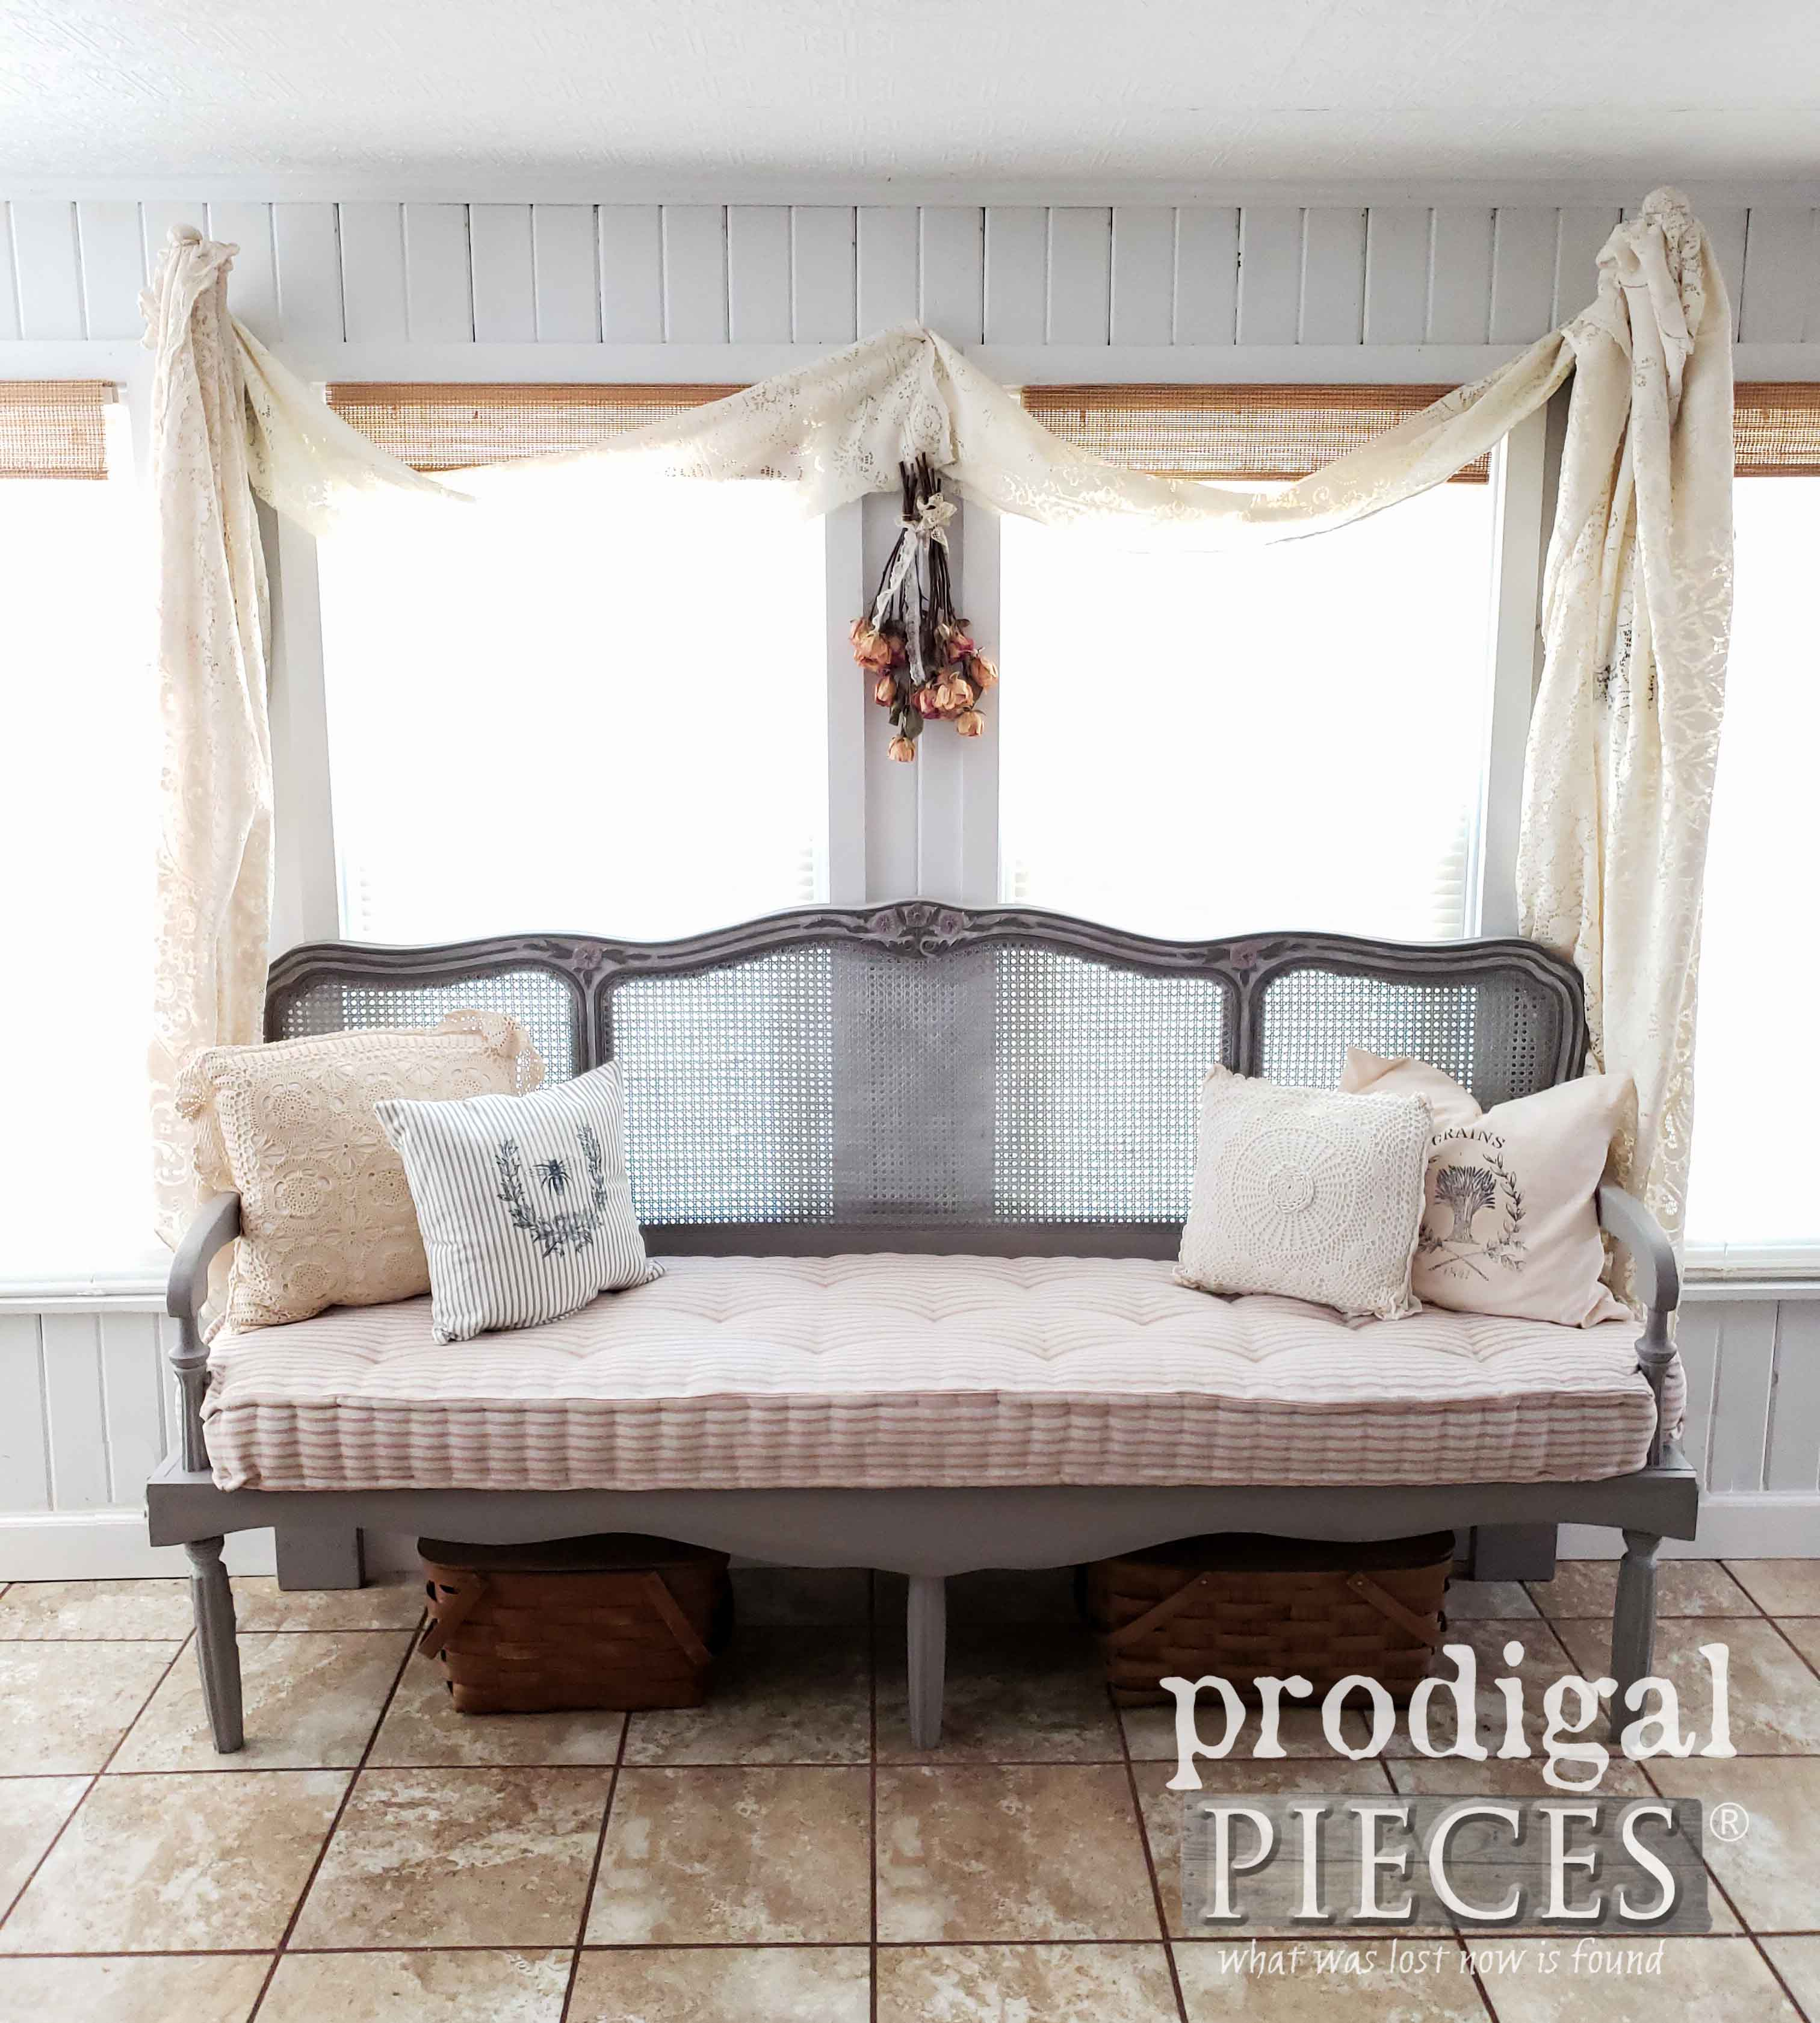 Tufted French Mattress on DIY Headboard Bench built by Larissa of Prodigal Pieces | prodigalpieces.com #prodigalpieces #furniture #diy #handmade #homedecor